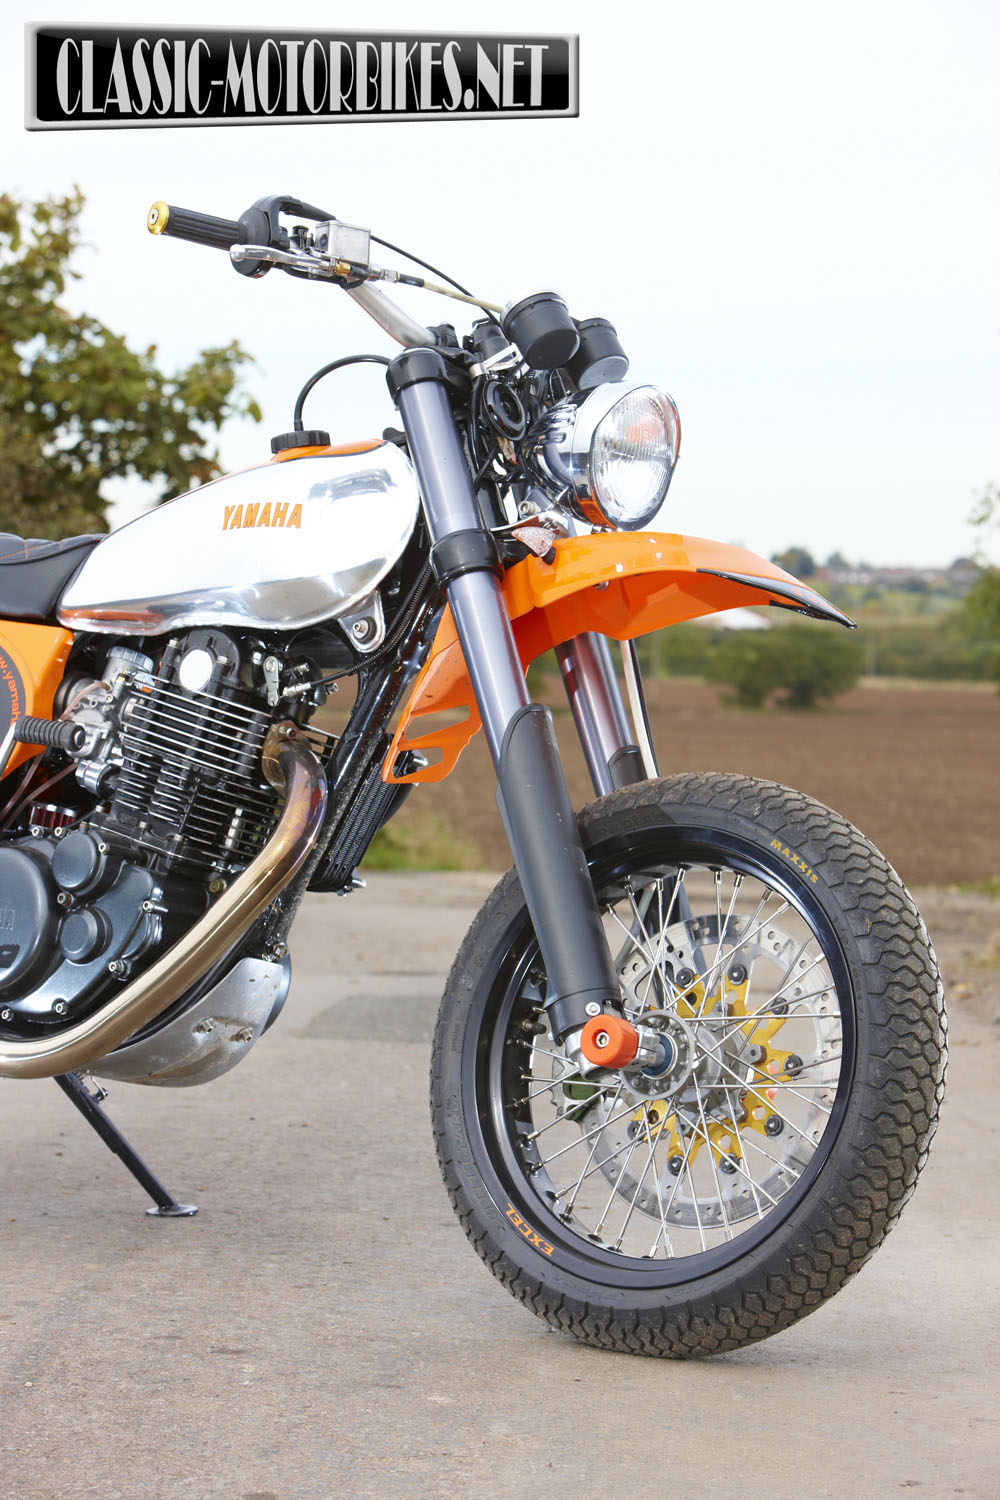 Racing Caf    Yamaha XT 500 Supermoto by Dave Newitt